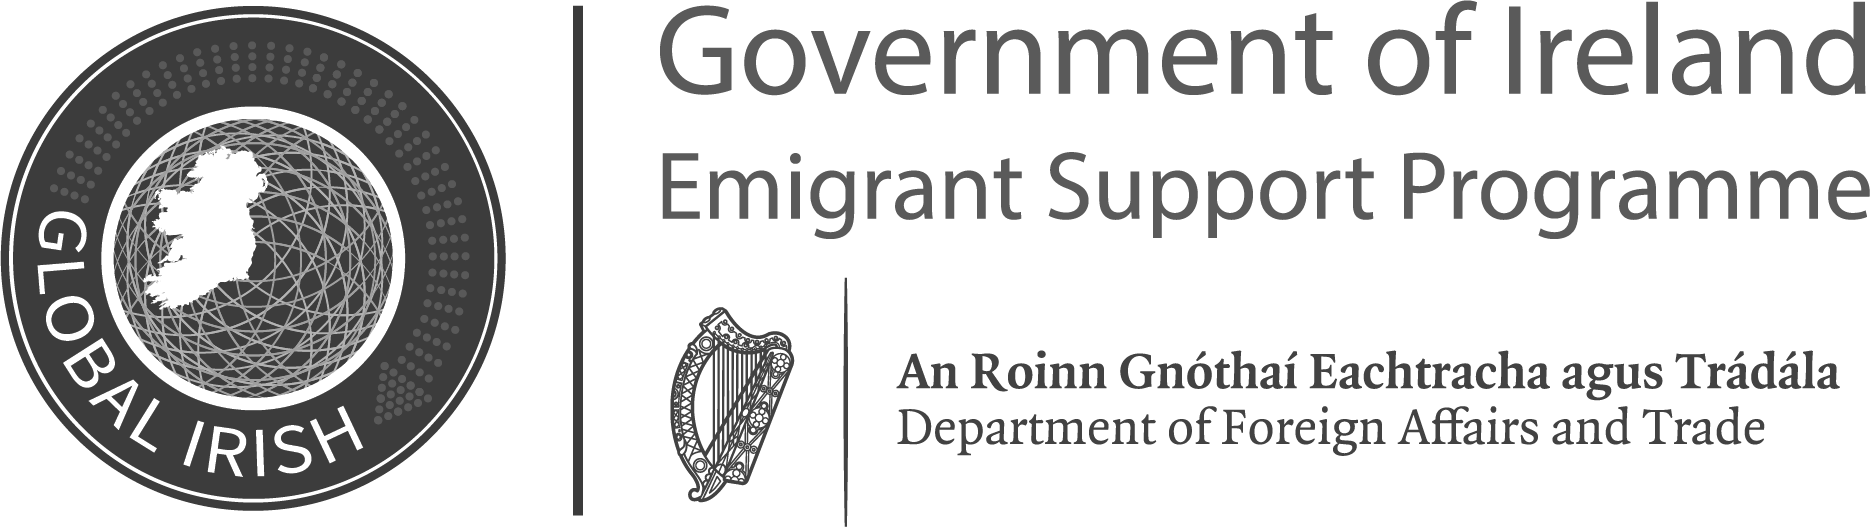 Government of Ireland: Emigrant Support Programme